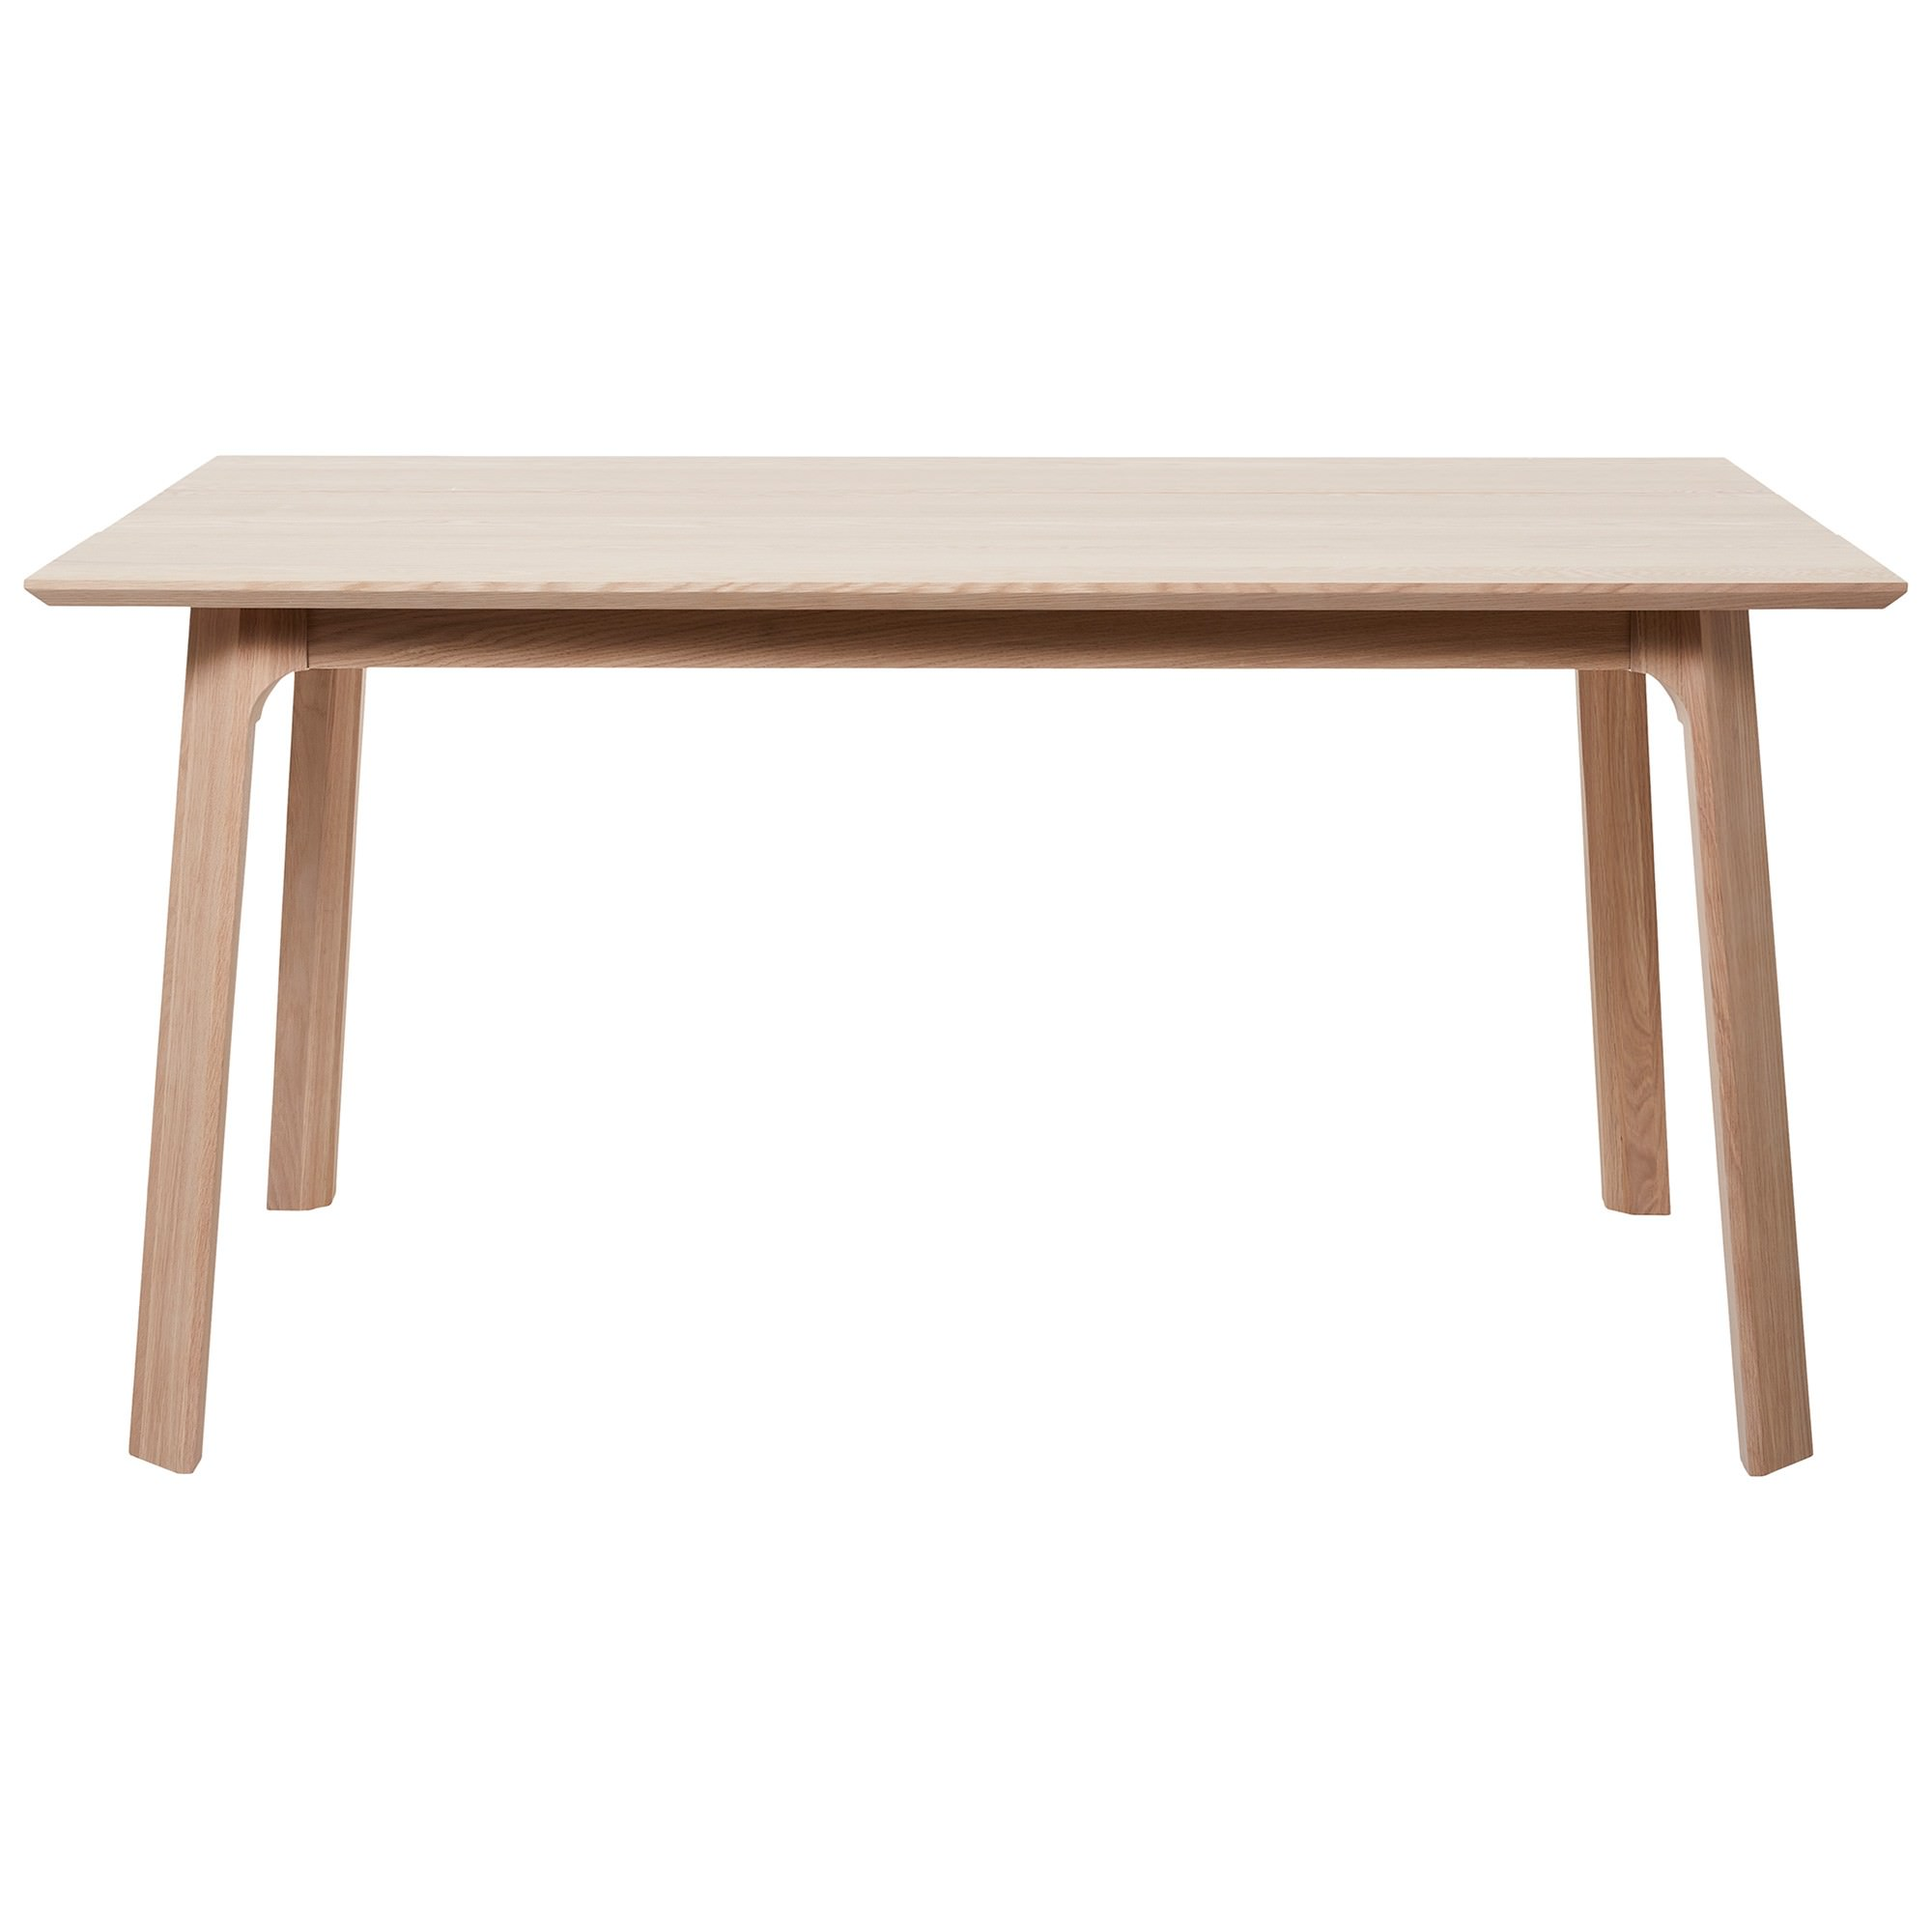 Capri White Oak Timber Dining Table, 200cm